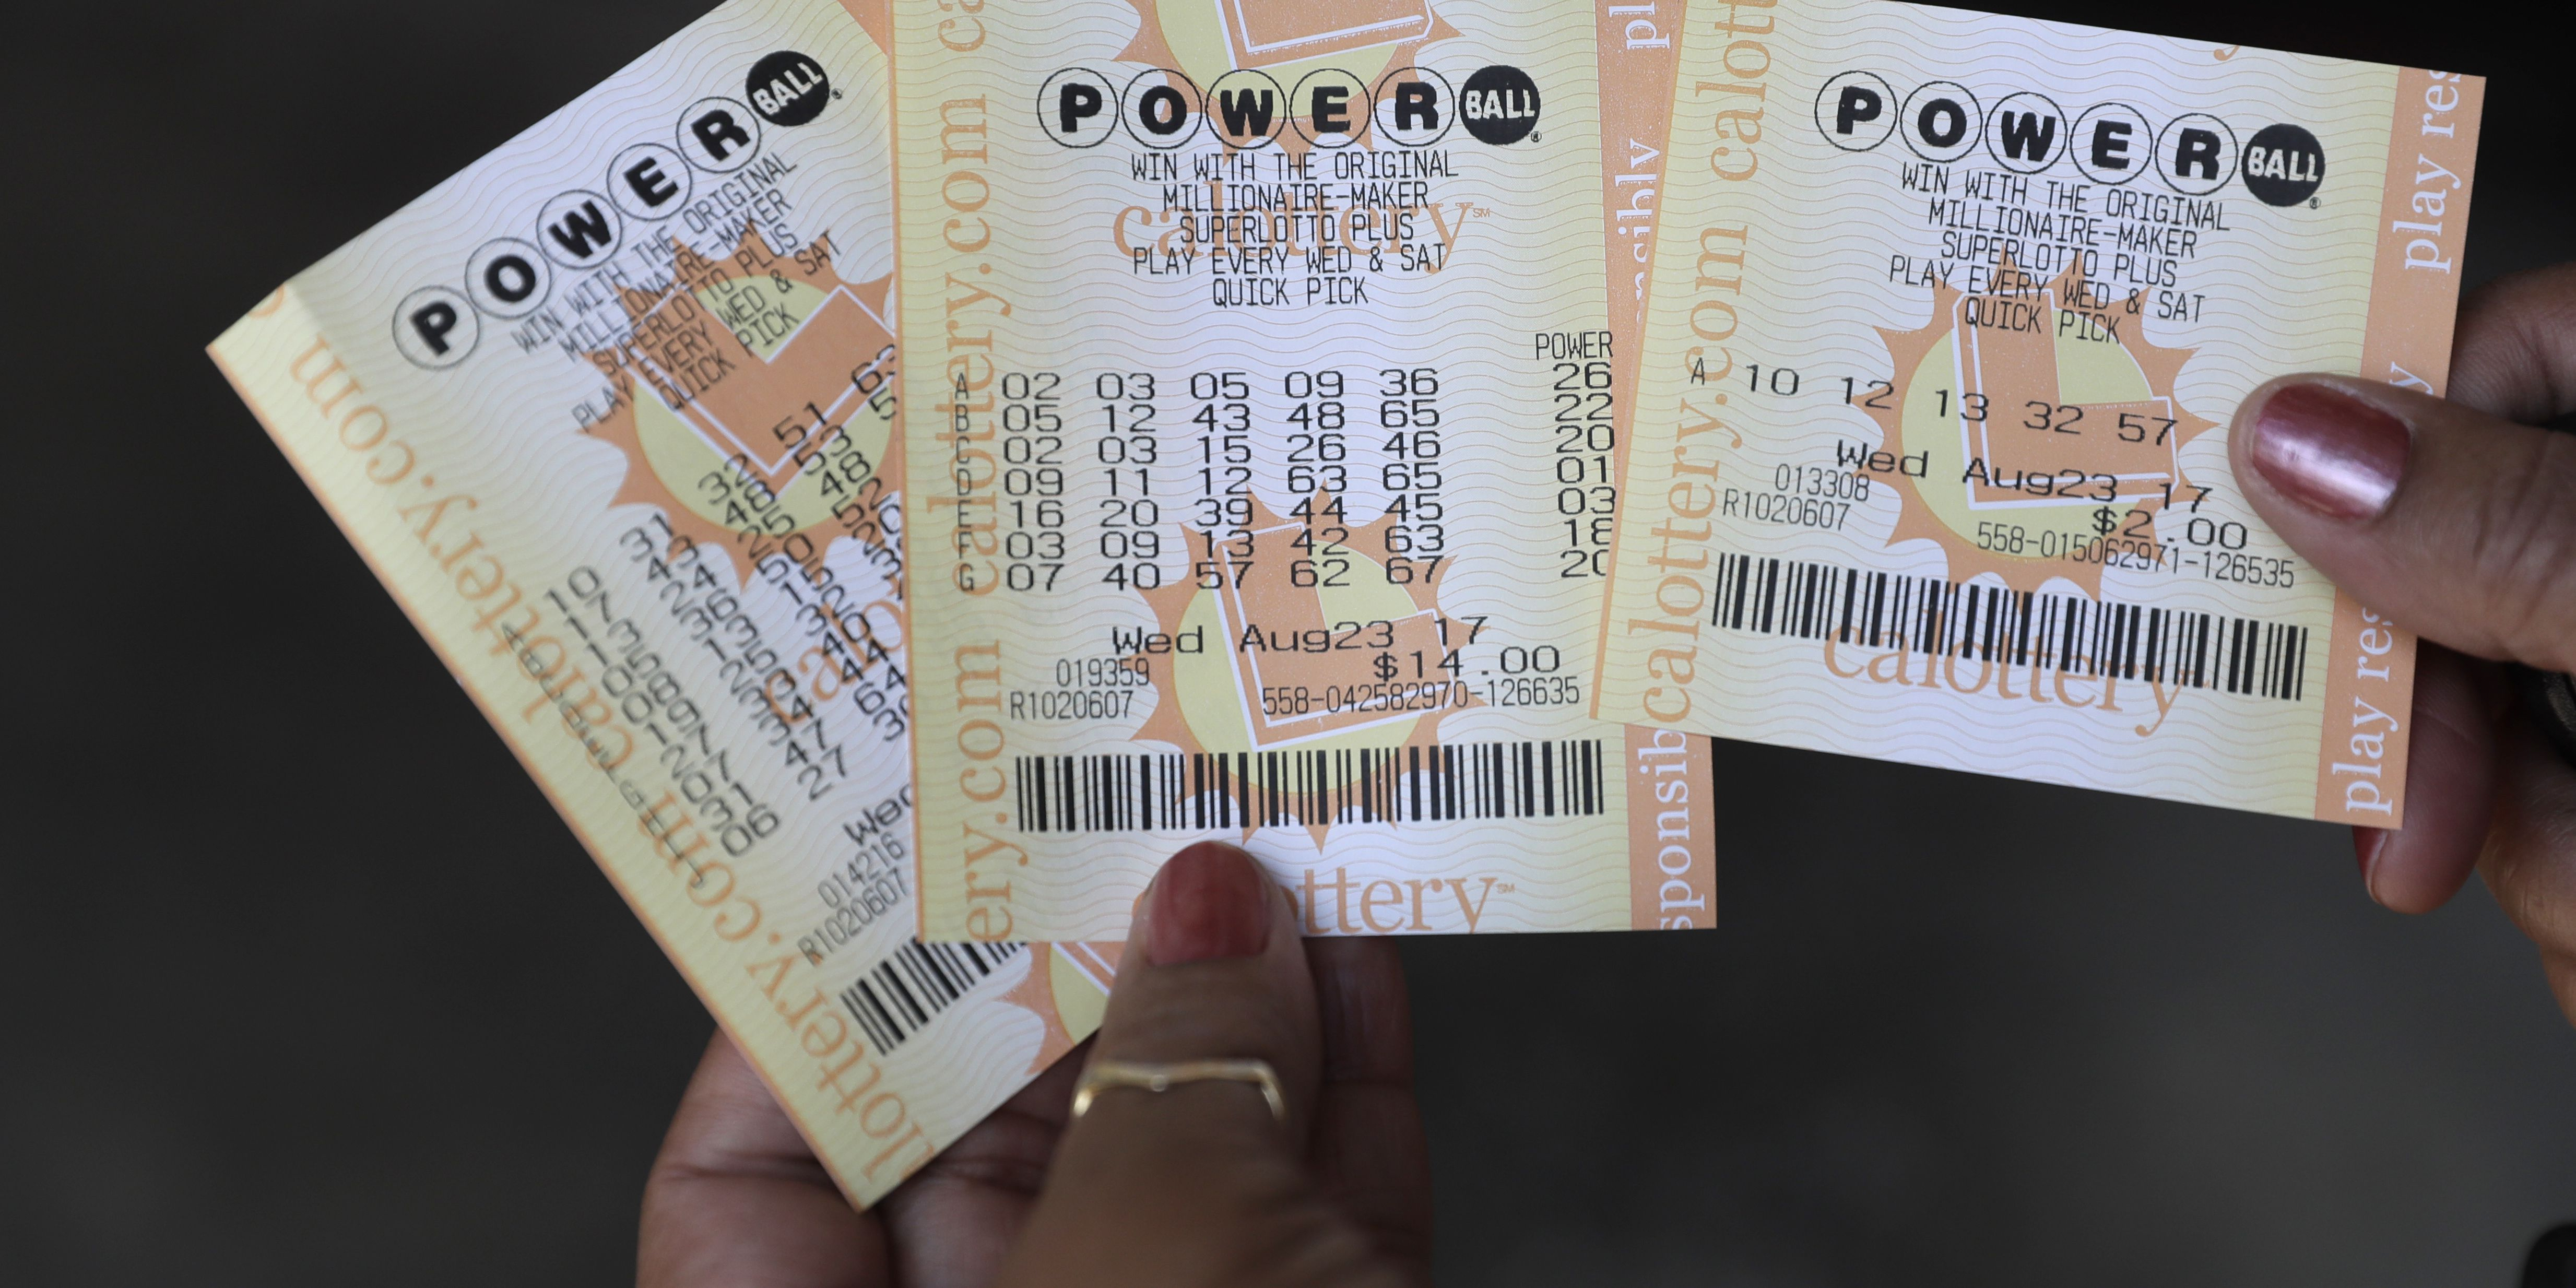 Powerball jackpot now at $625 million, 4th largest in lottery's history